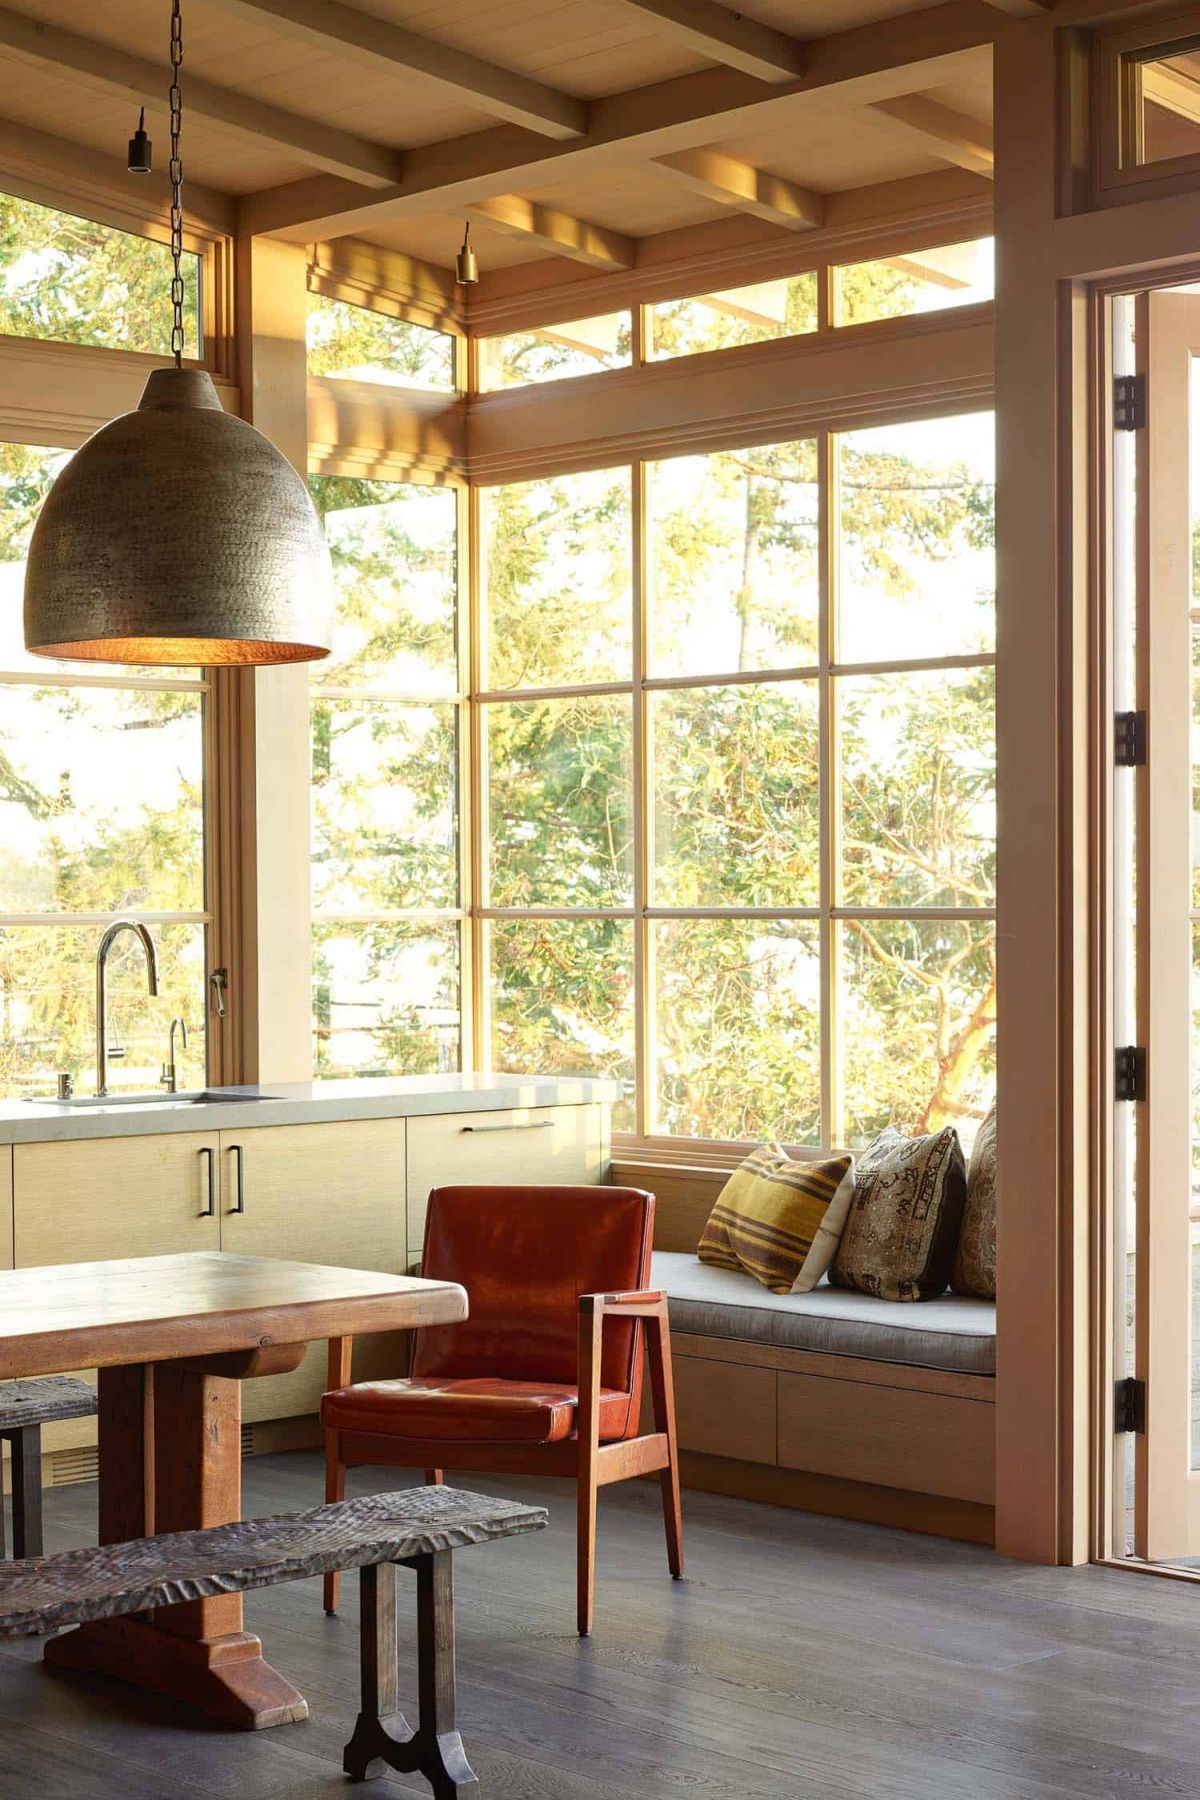 The kitchen has an open concept design and includes a cozy seating nook by the window